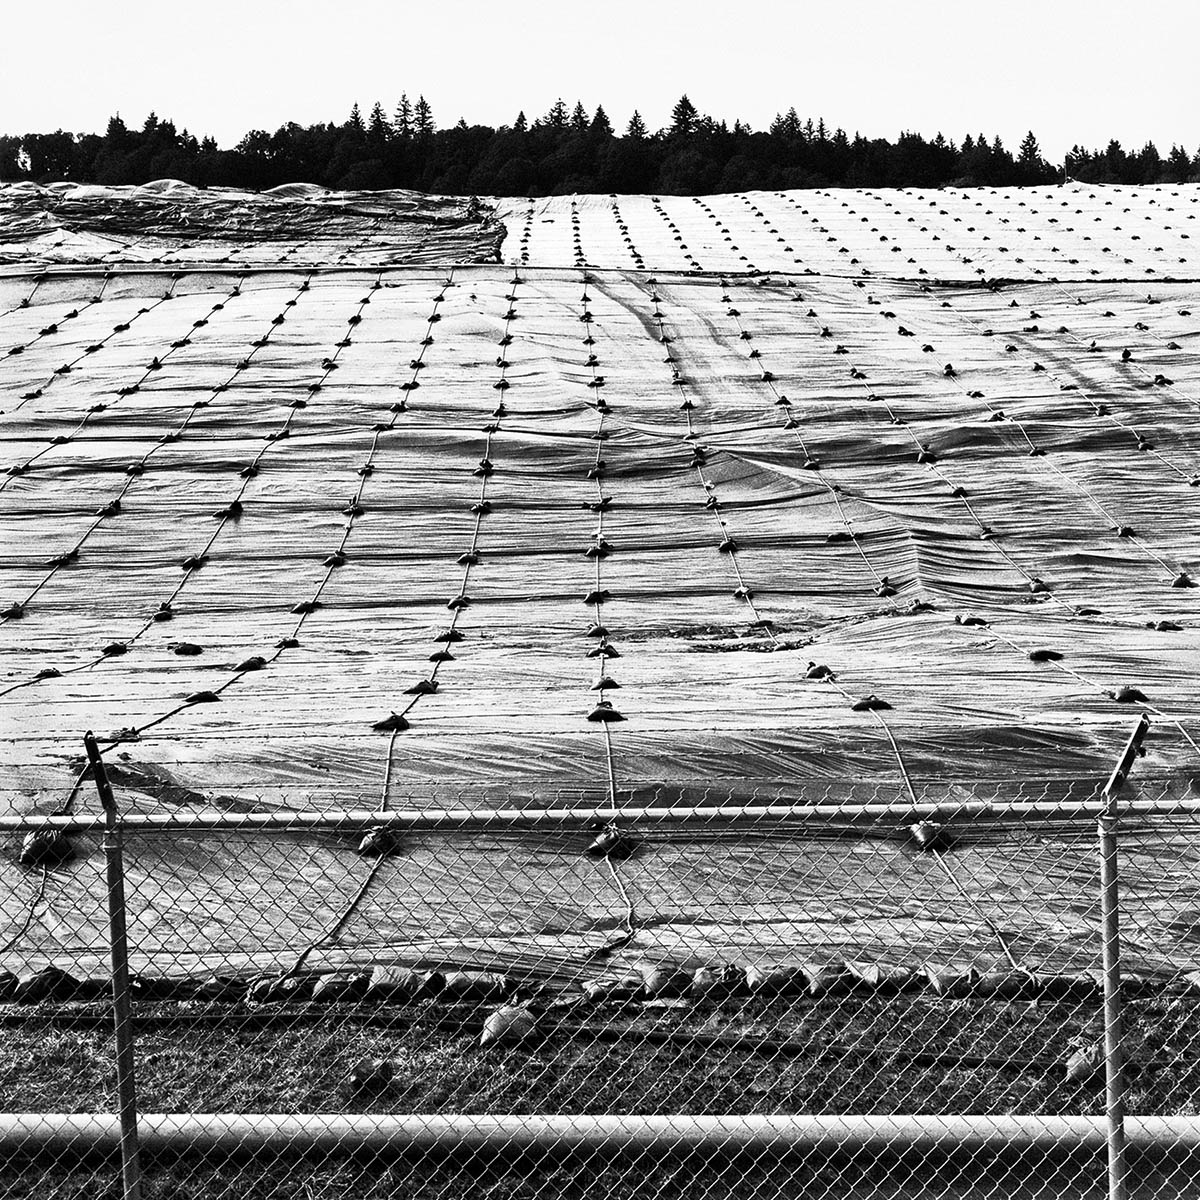 Landfill near Eugene, Oregon, 1996